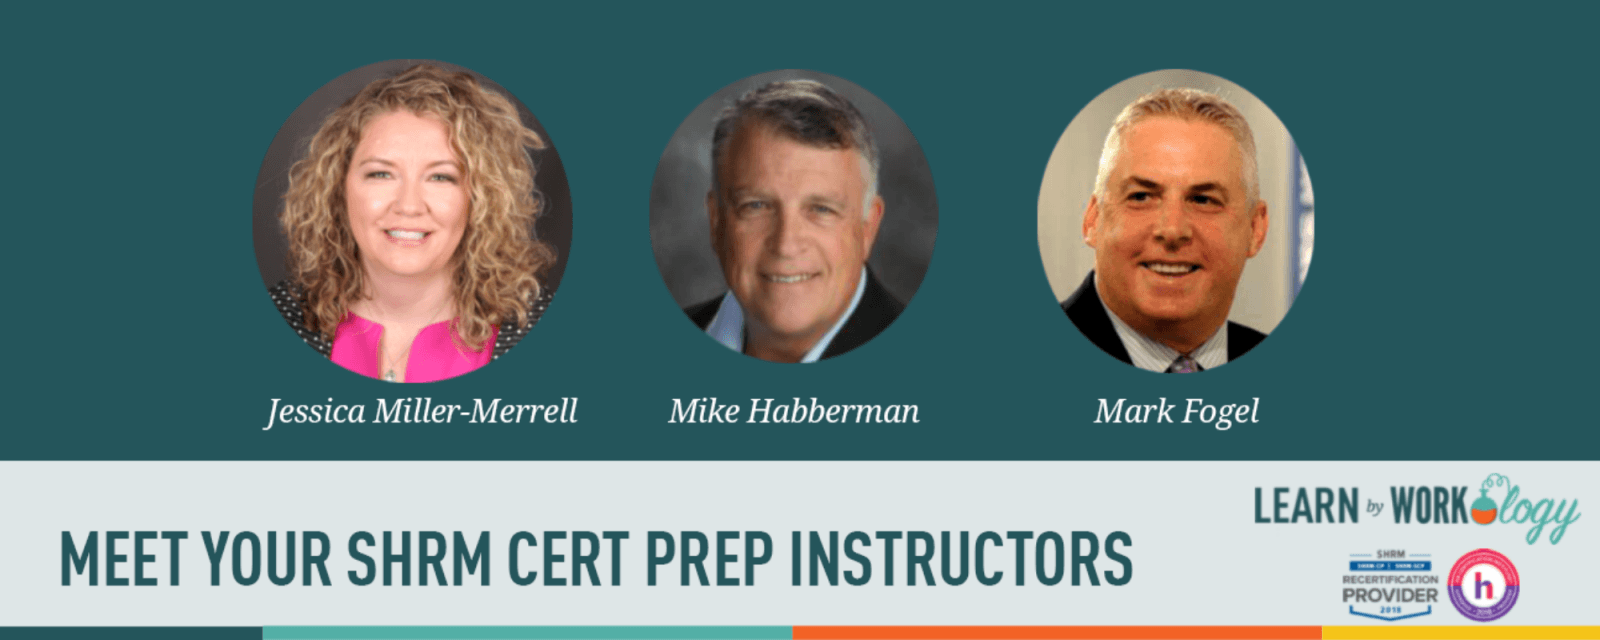 meet-shrm-cert-instructors-2000x800